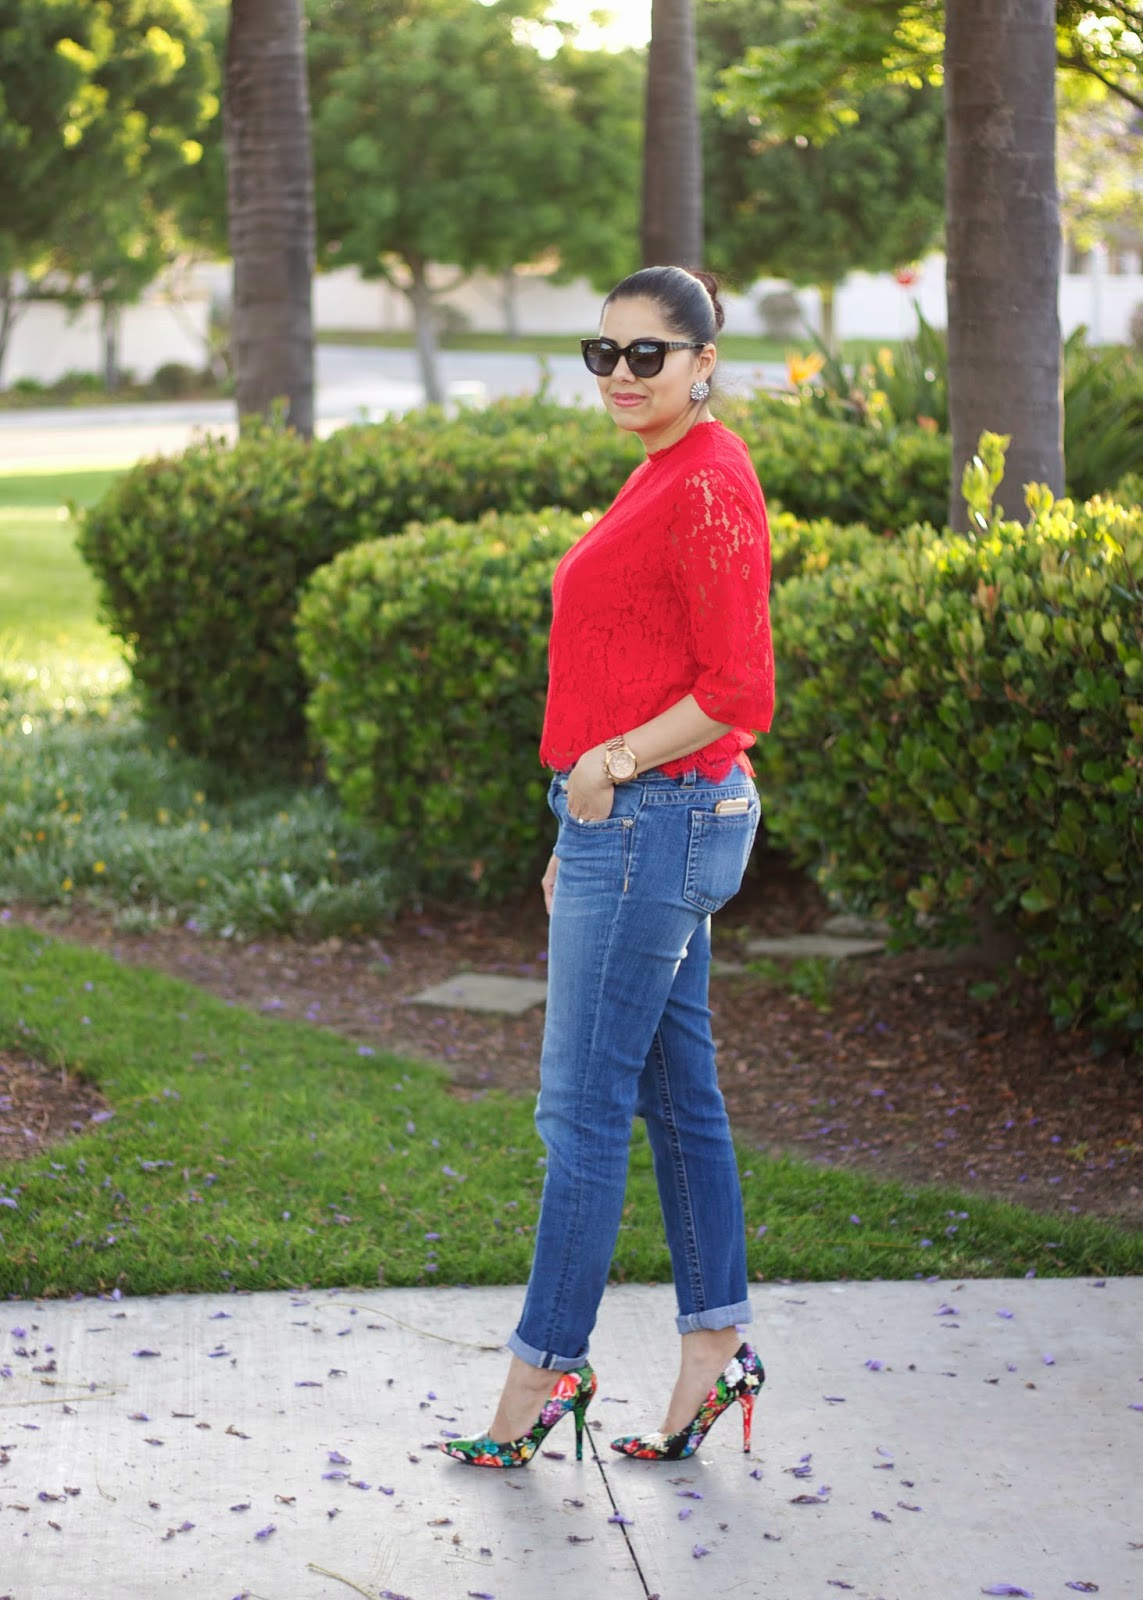 Red lace Outfit, How to wear floral heels, how to wear red lace, casual yet dressed up jeans